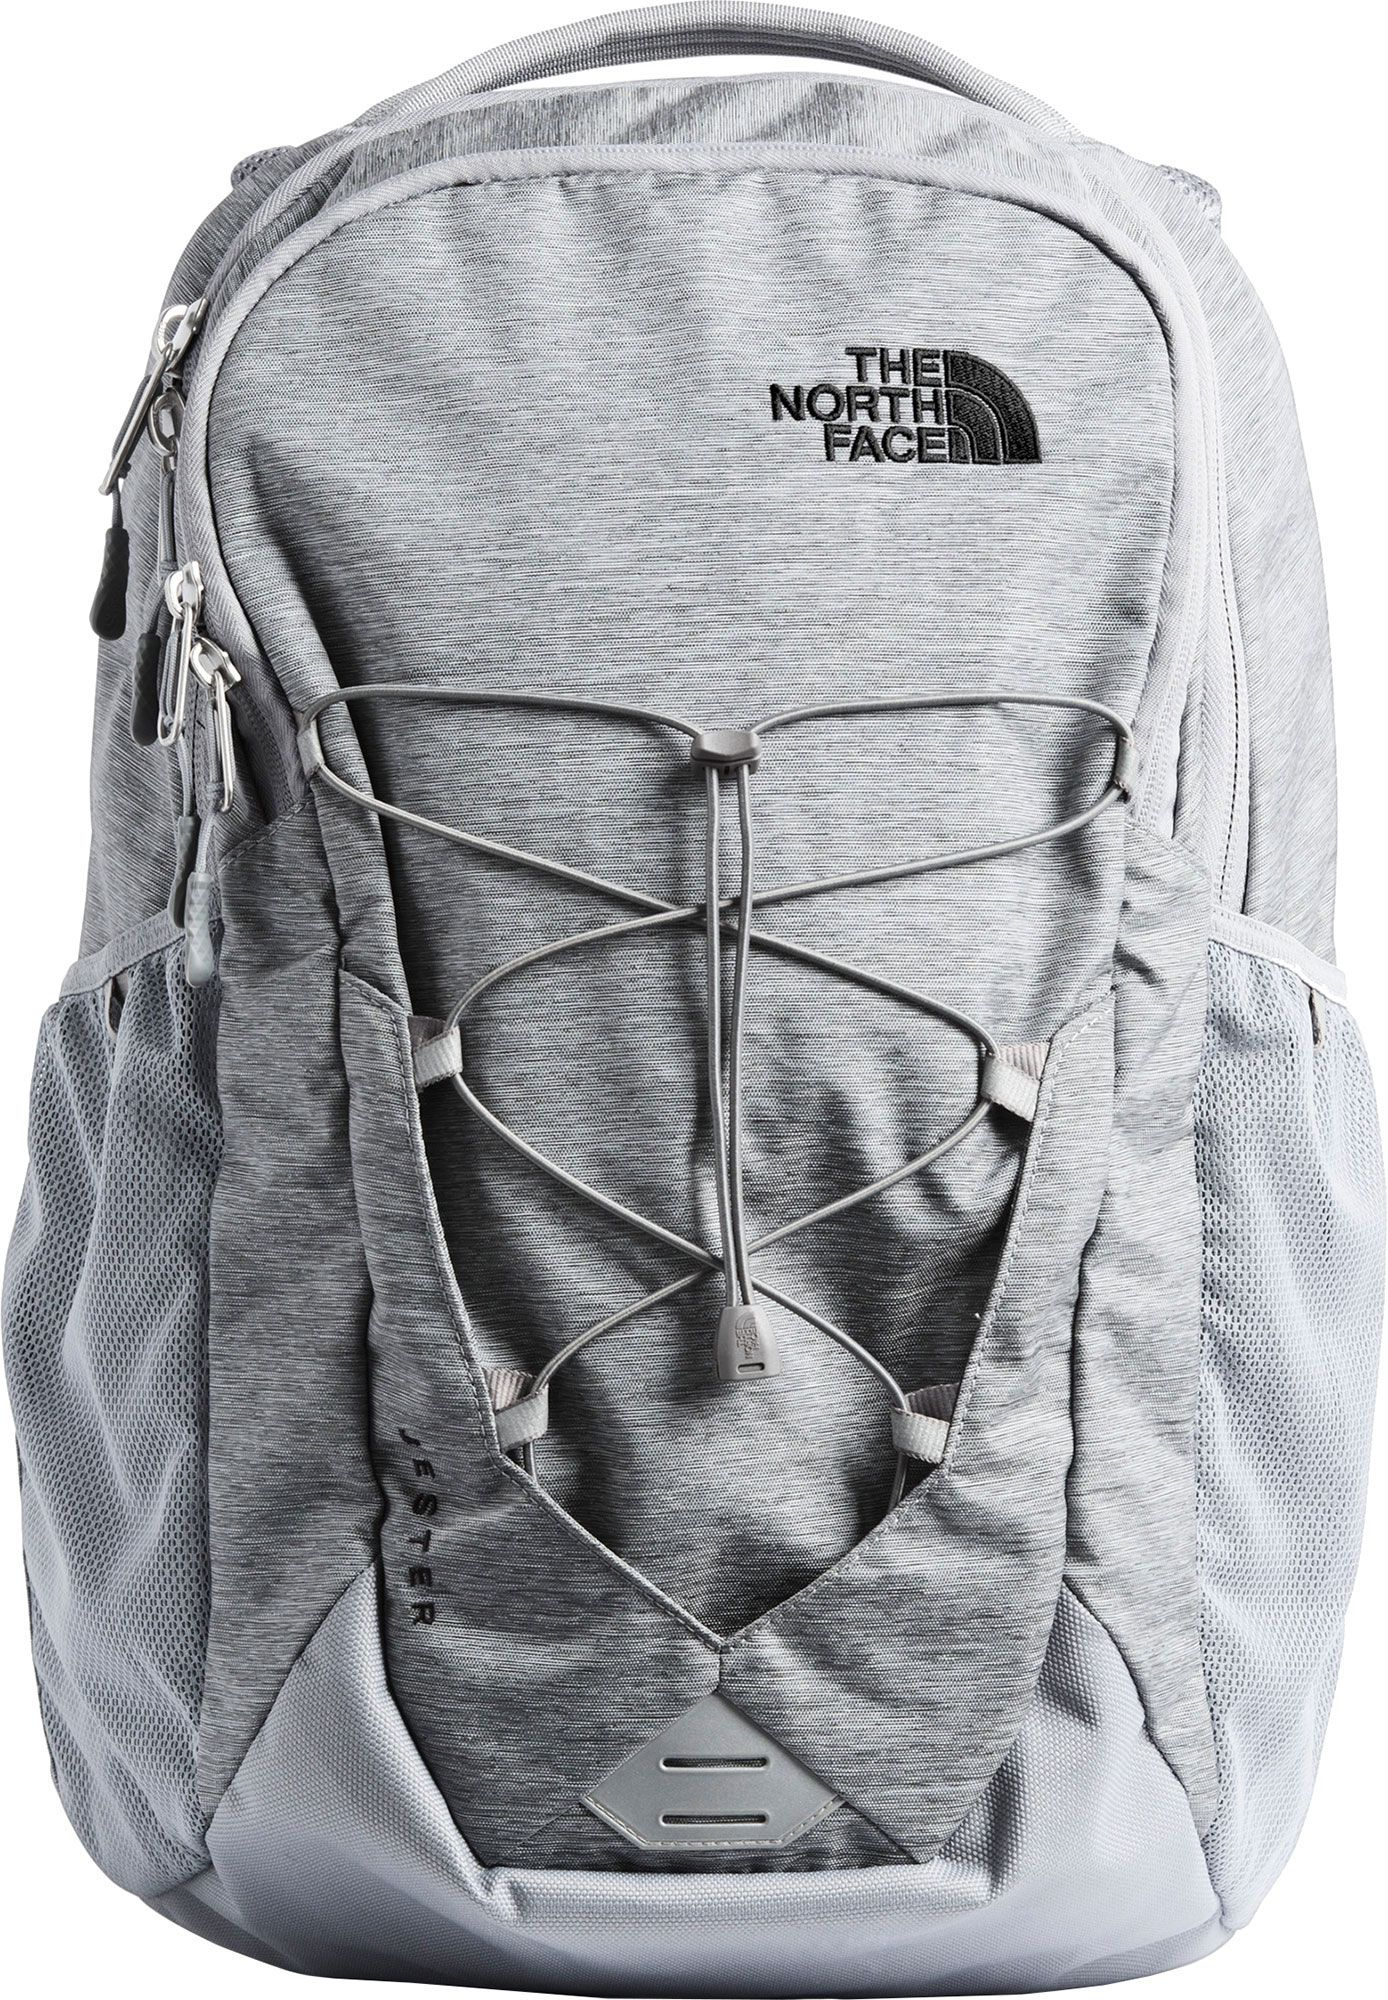 The North Face Men's Jester Backpack | DICK'